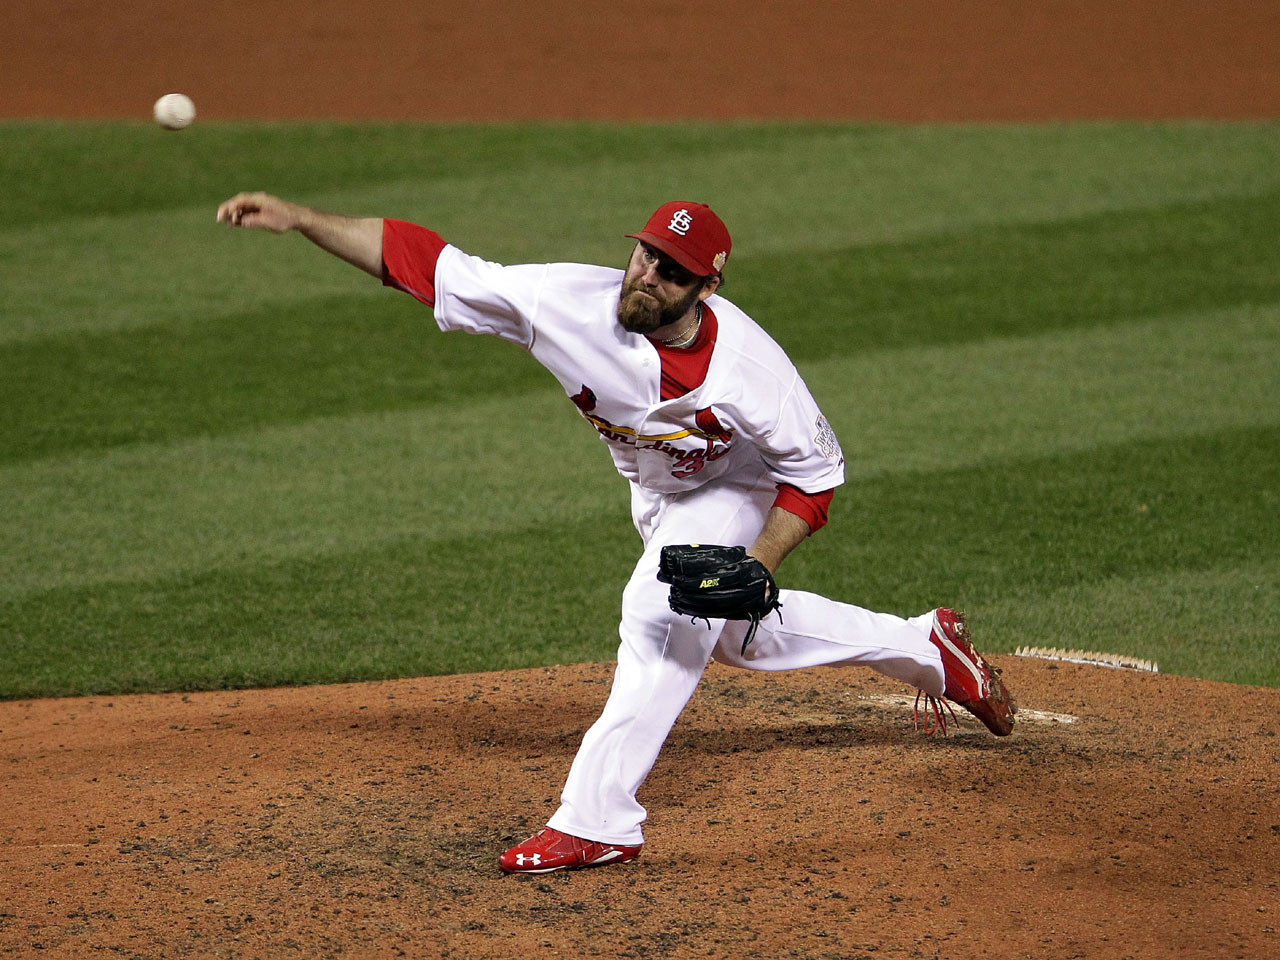 65a64f6dabf Cardinals win 3-2 in World Series game 1 - CBS News